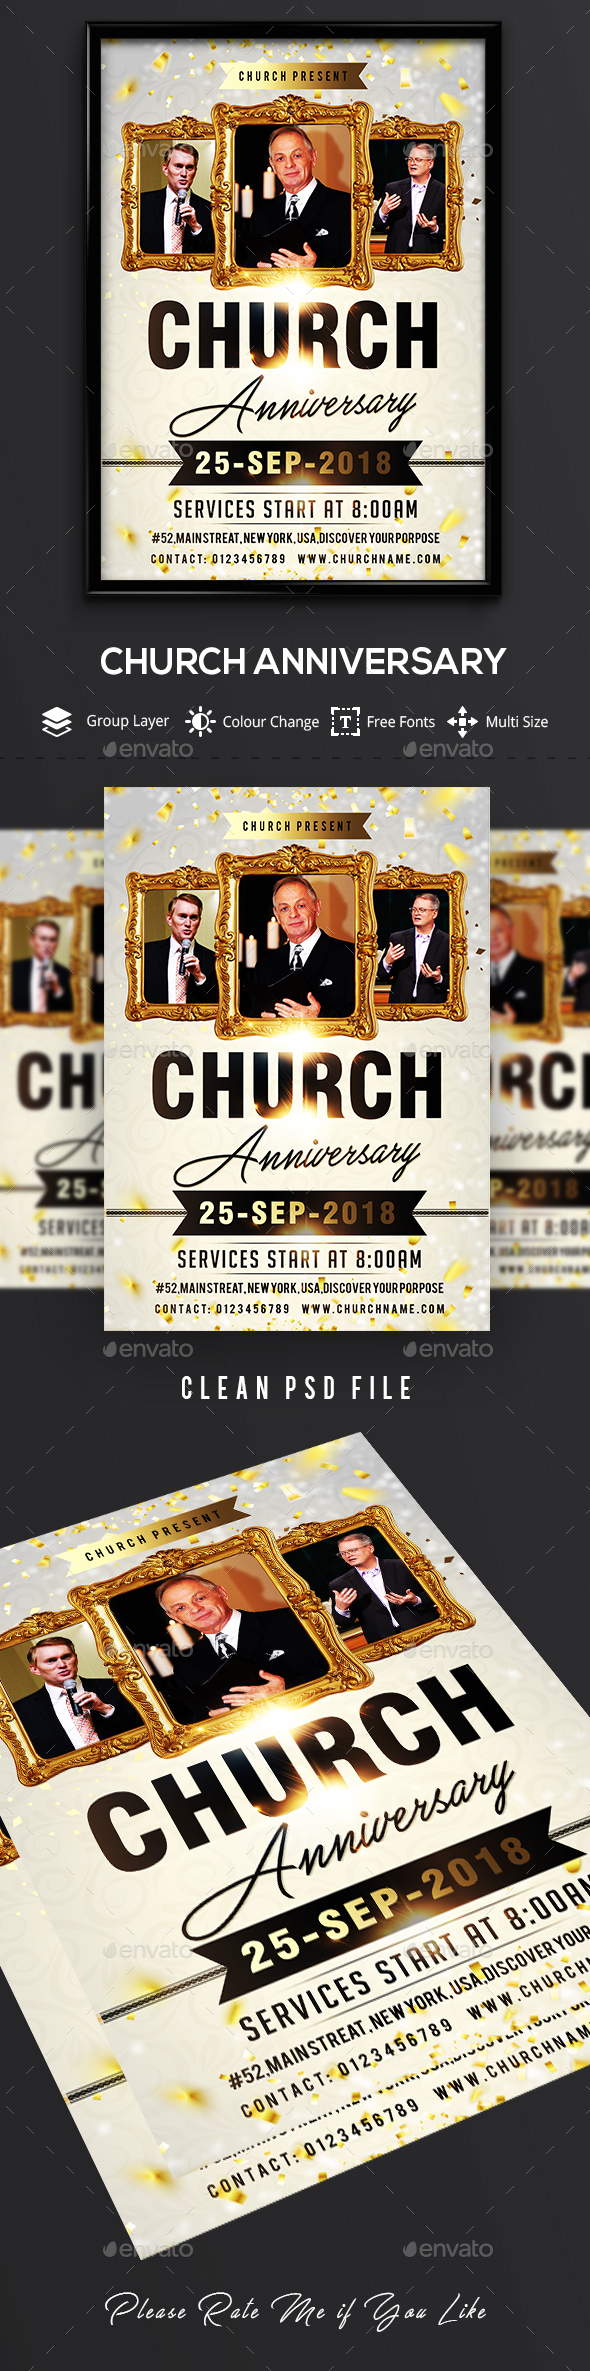 Church Anniversary Flyer Template - Events Flyers